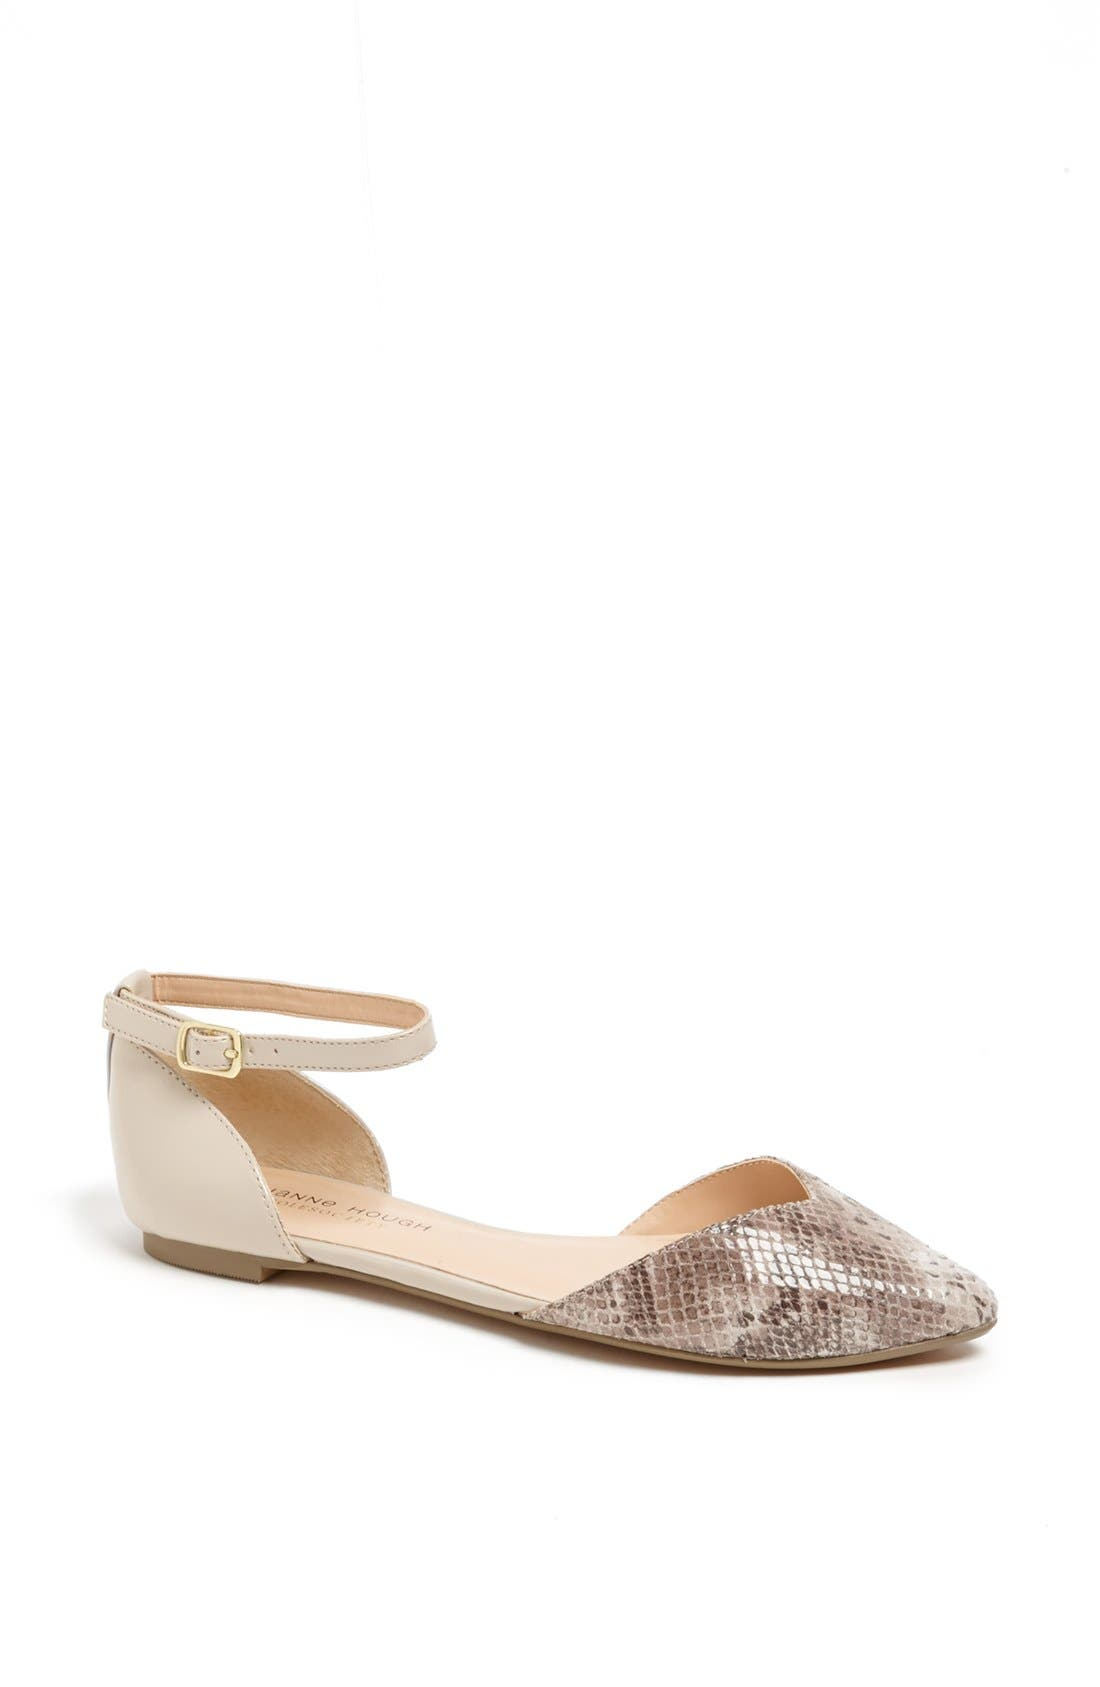 Alternate Image 1 Selected - Sole Society 'Hadley' Ankle Strap Pointy Toe Flat